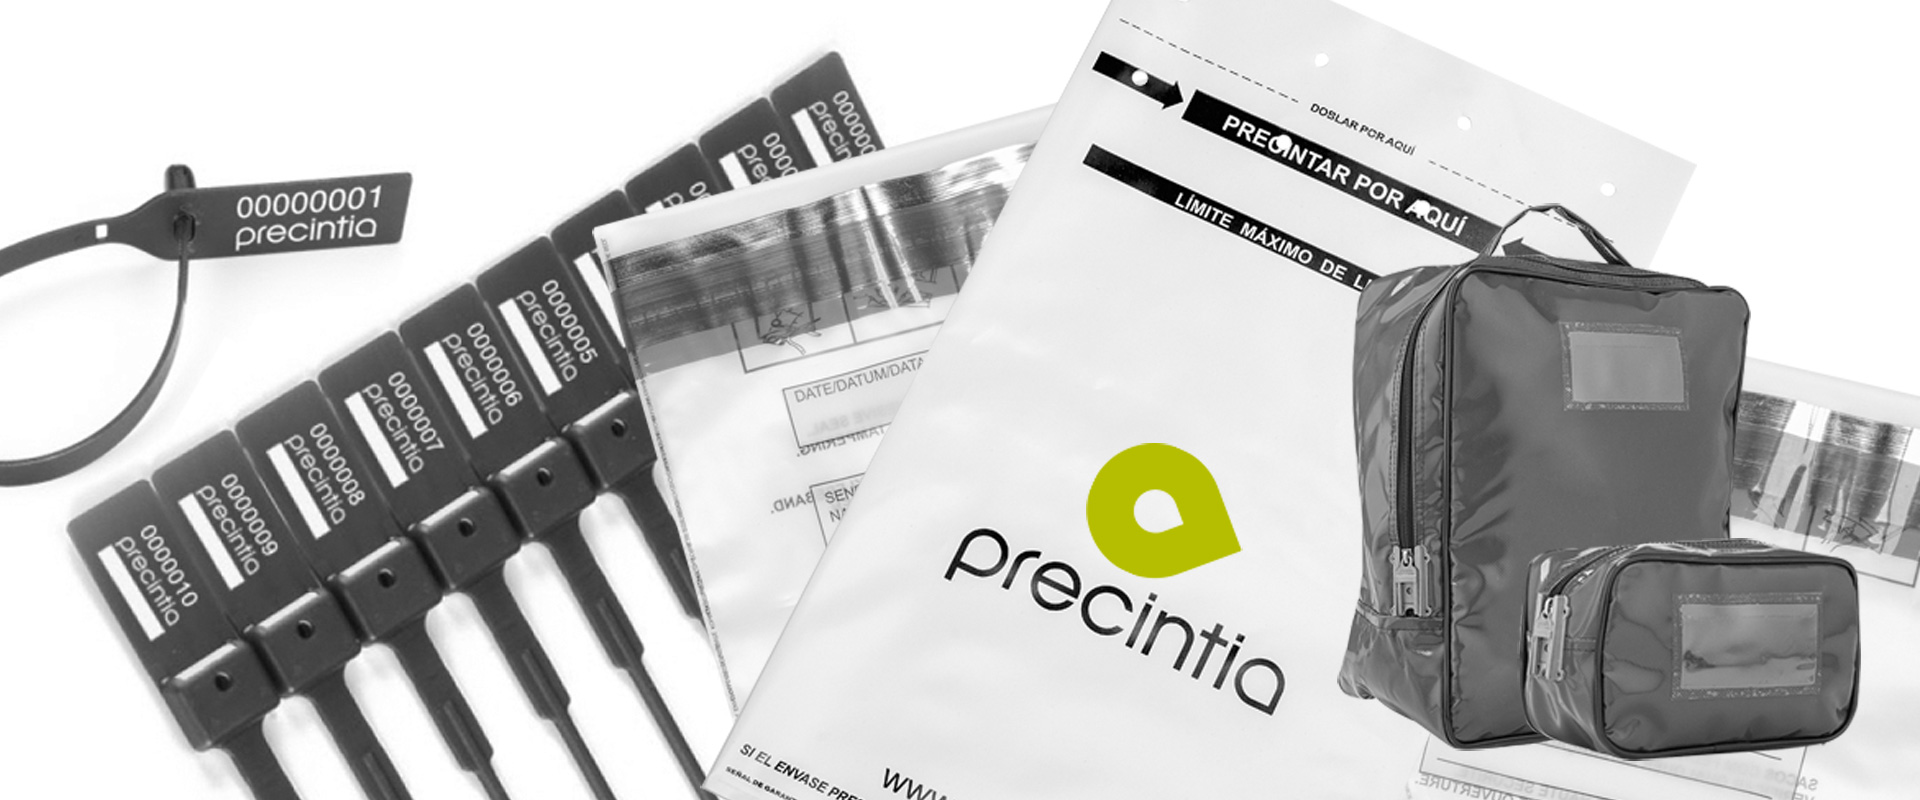 Precintia Other products